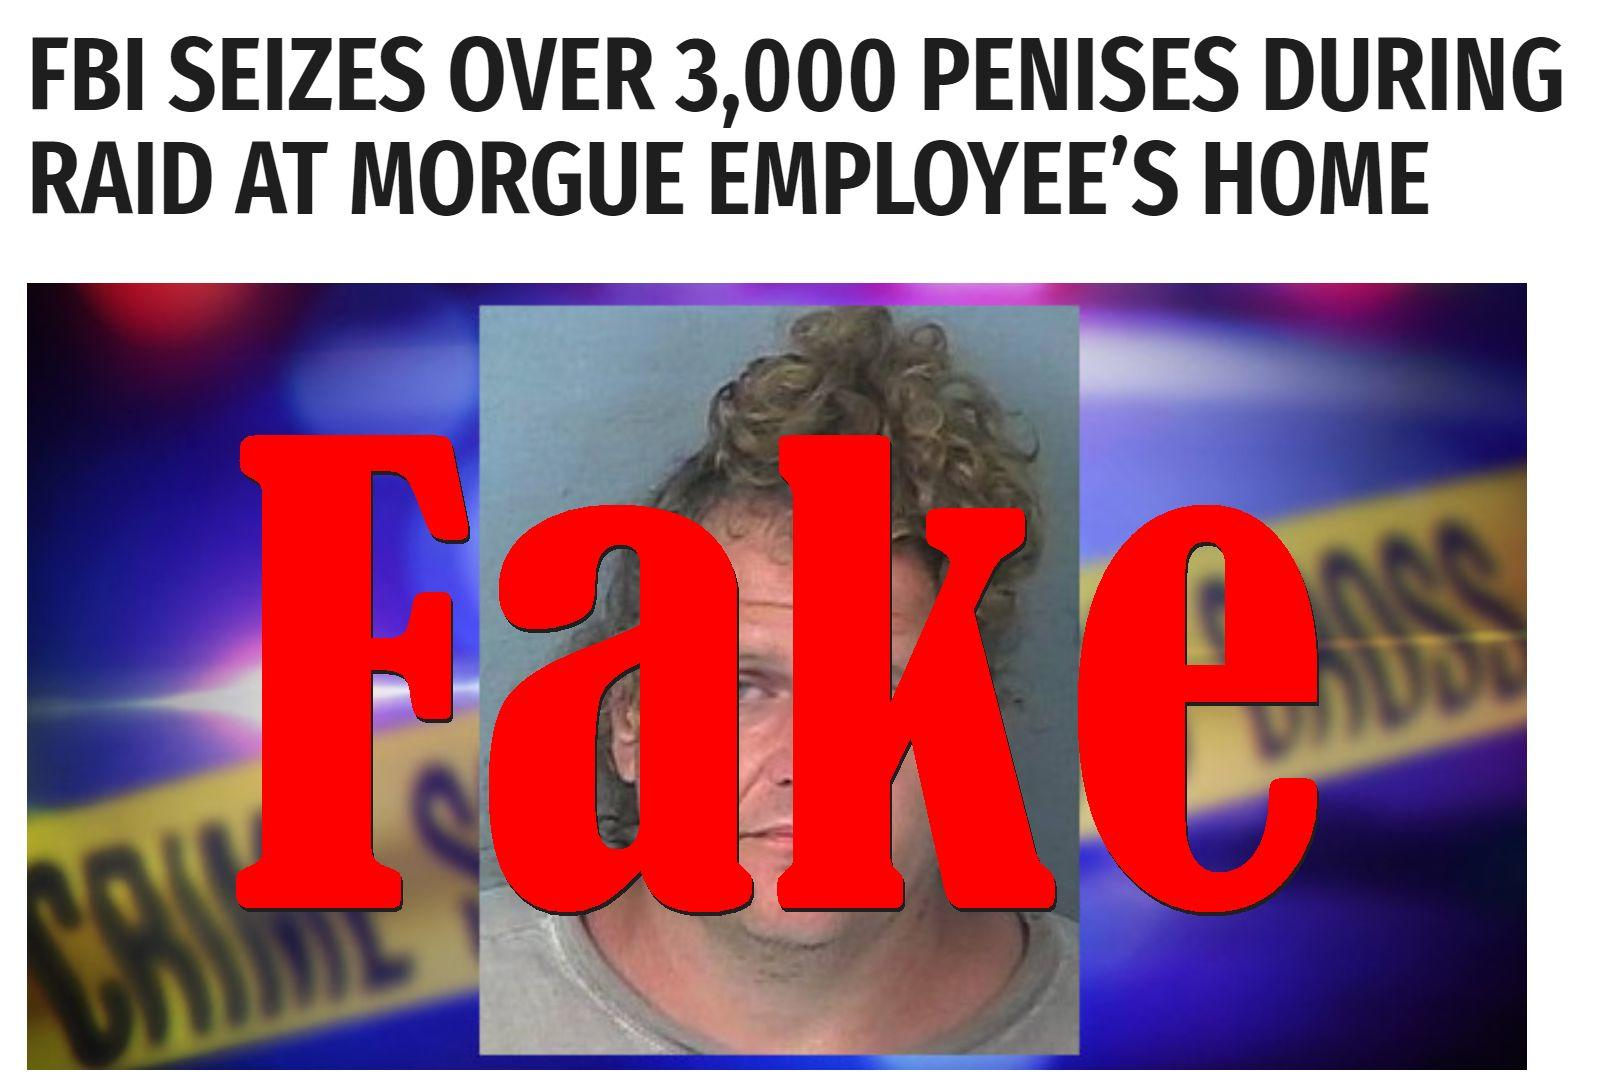 Fake News: FBI Did NOT Seize Over 3,000 Penises During Raid At Morgue Employee Home